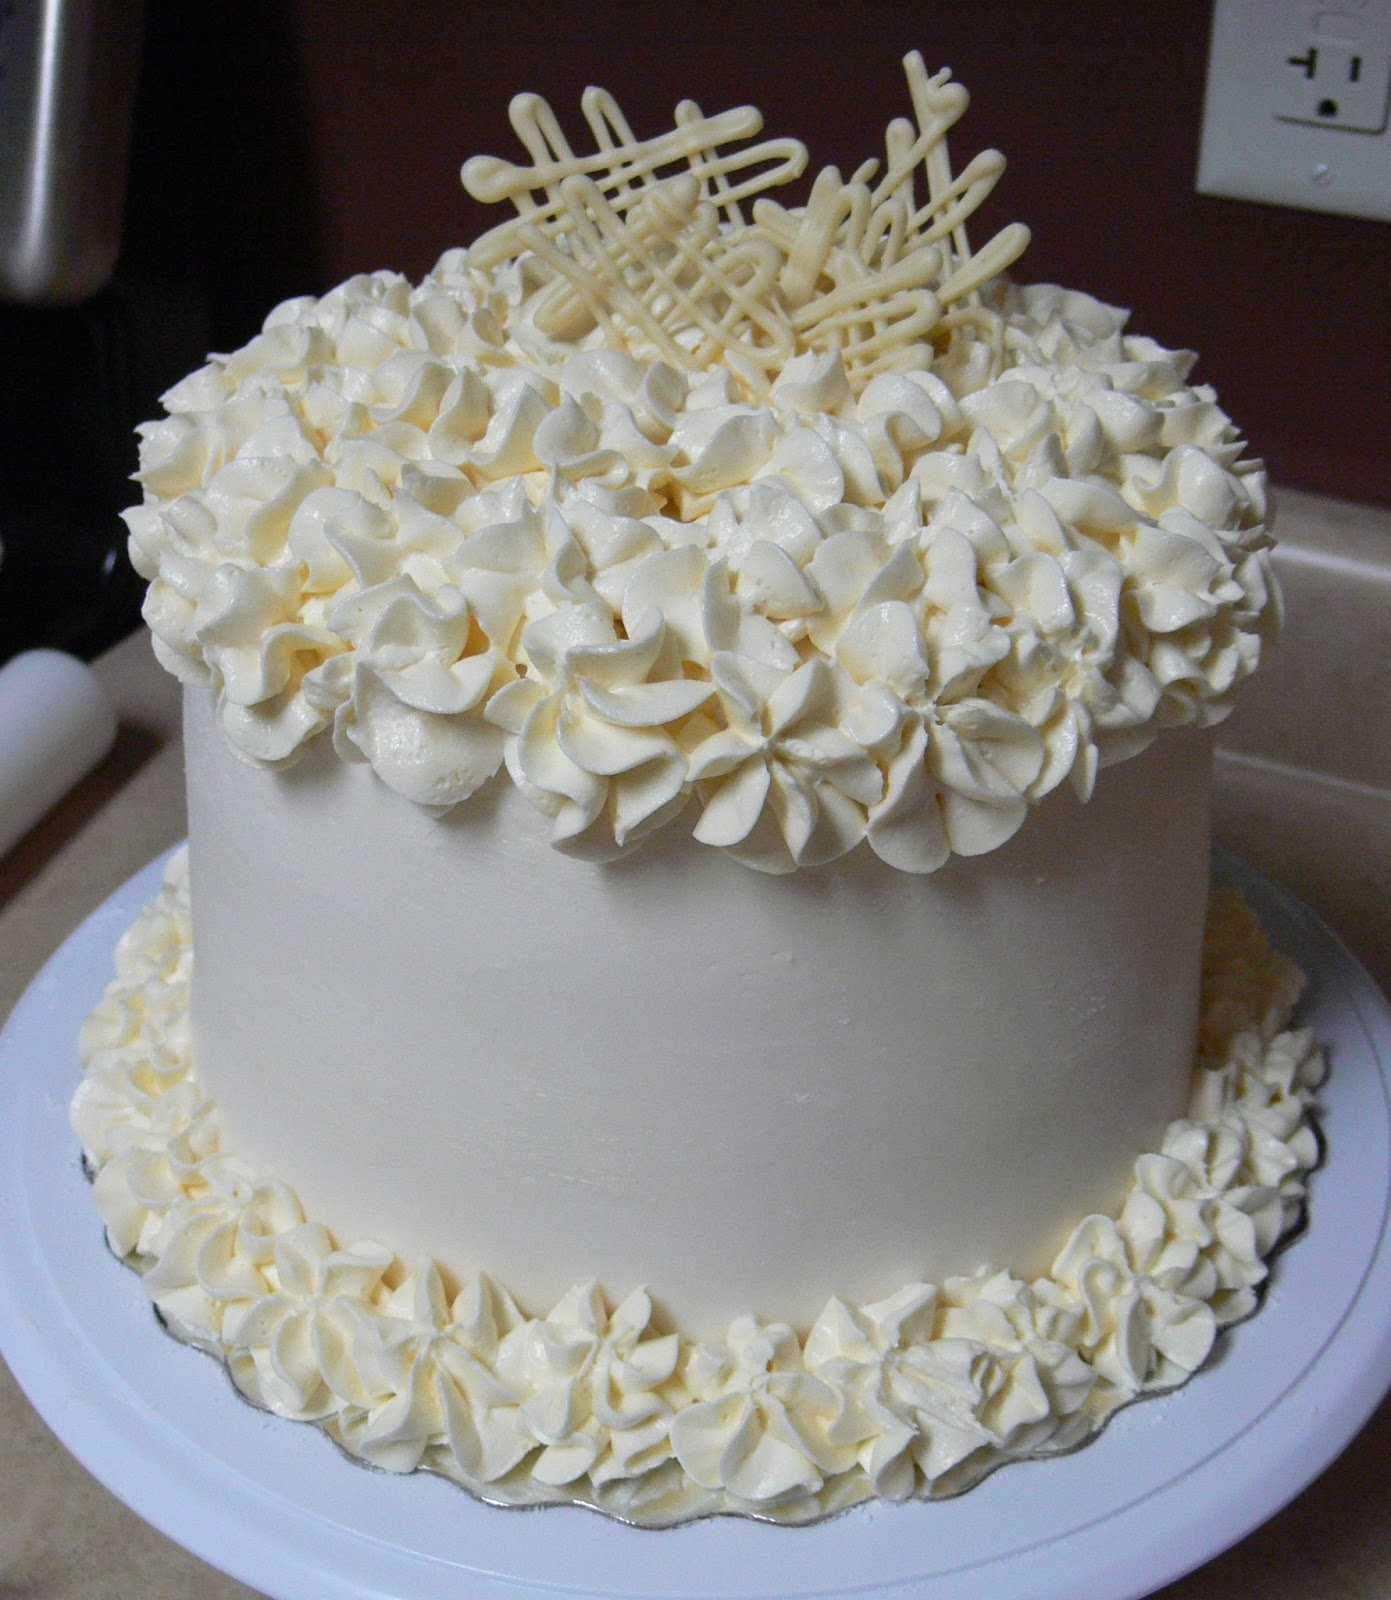 Cake Decoration Buttercream : The Ultimate Chocolate Blog: Chocolate Cake that Looks ...